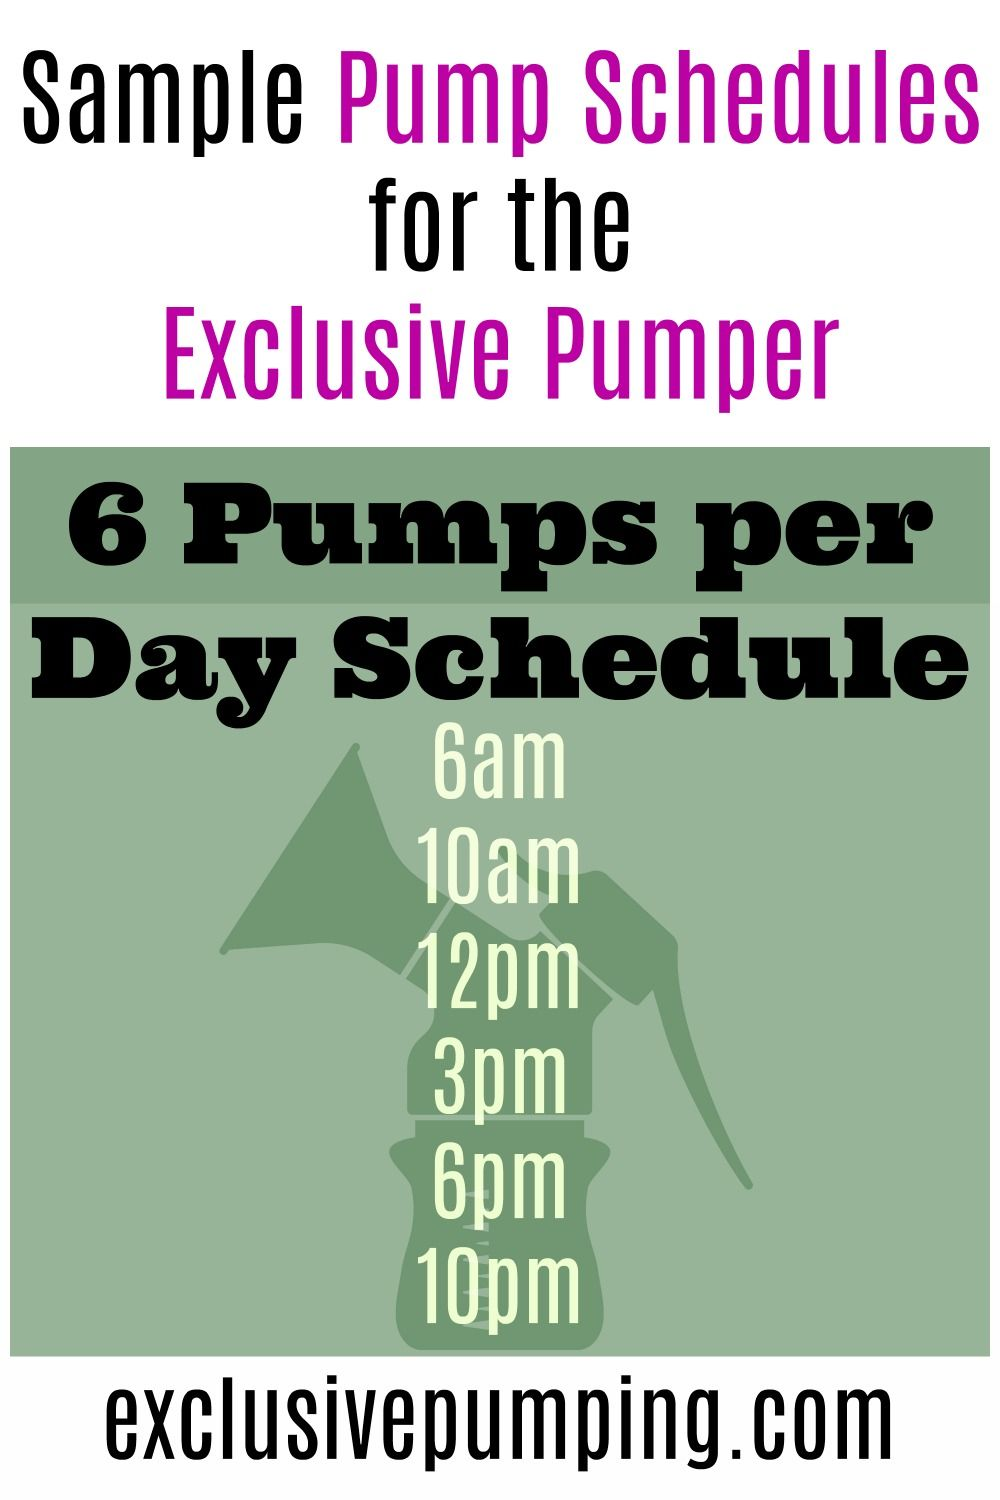 Sample Pumping Schedules in 2020 (With images) Pumping